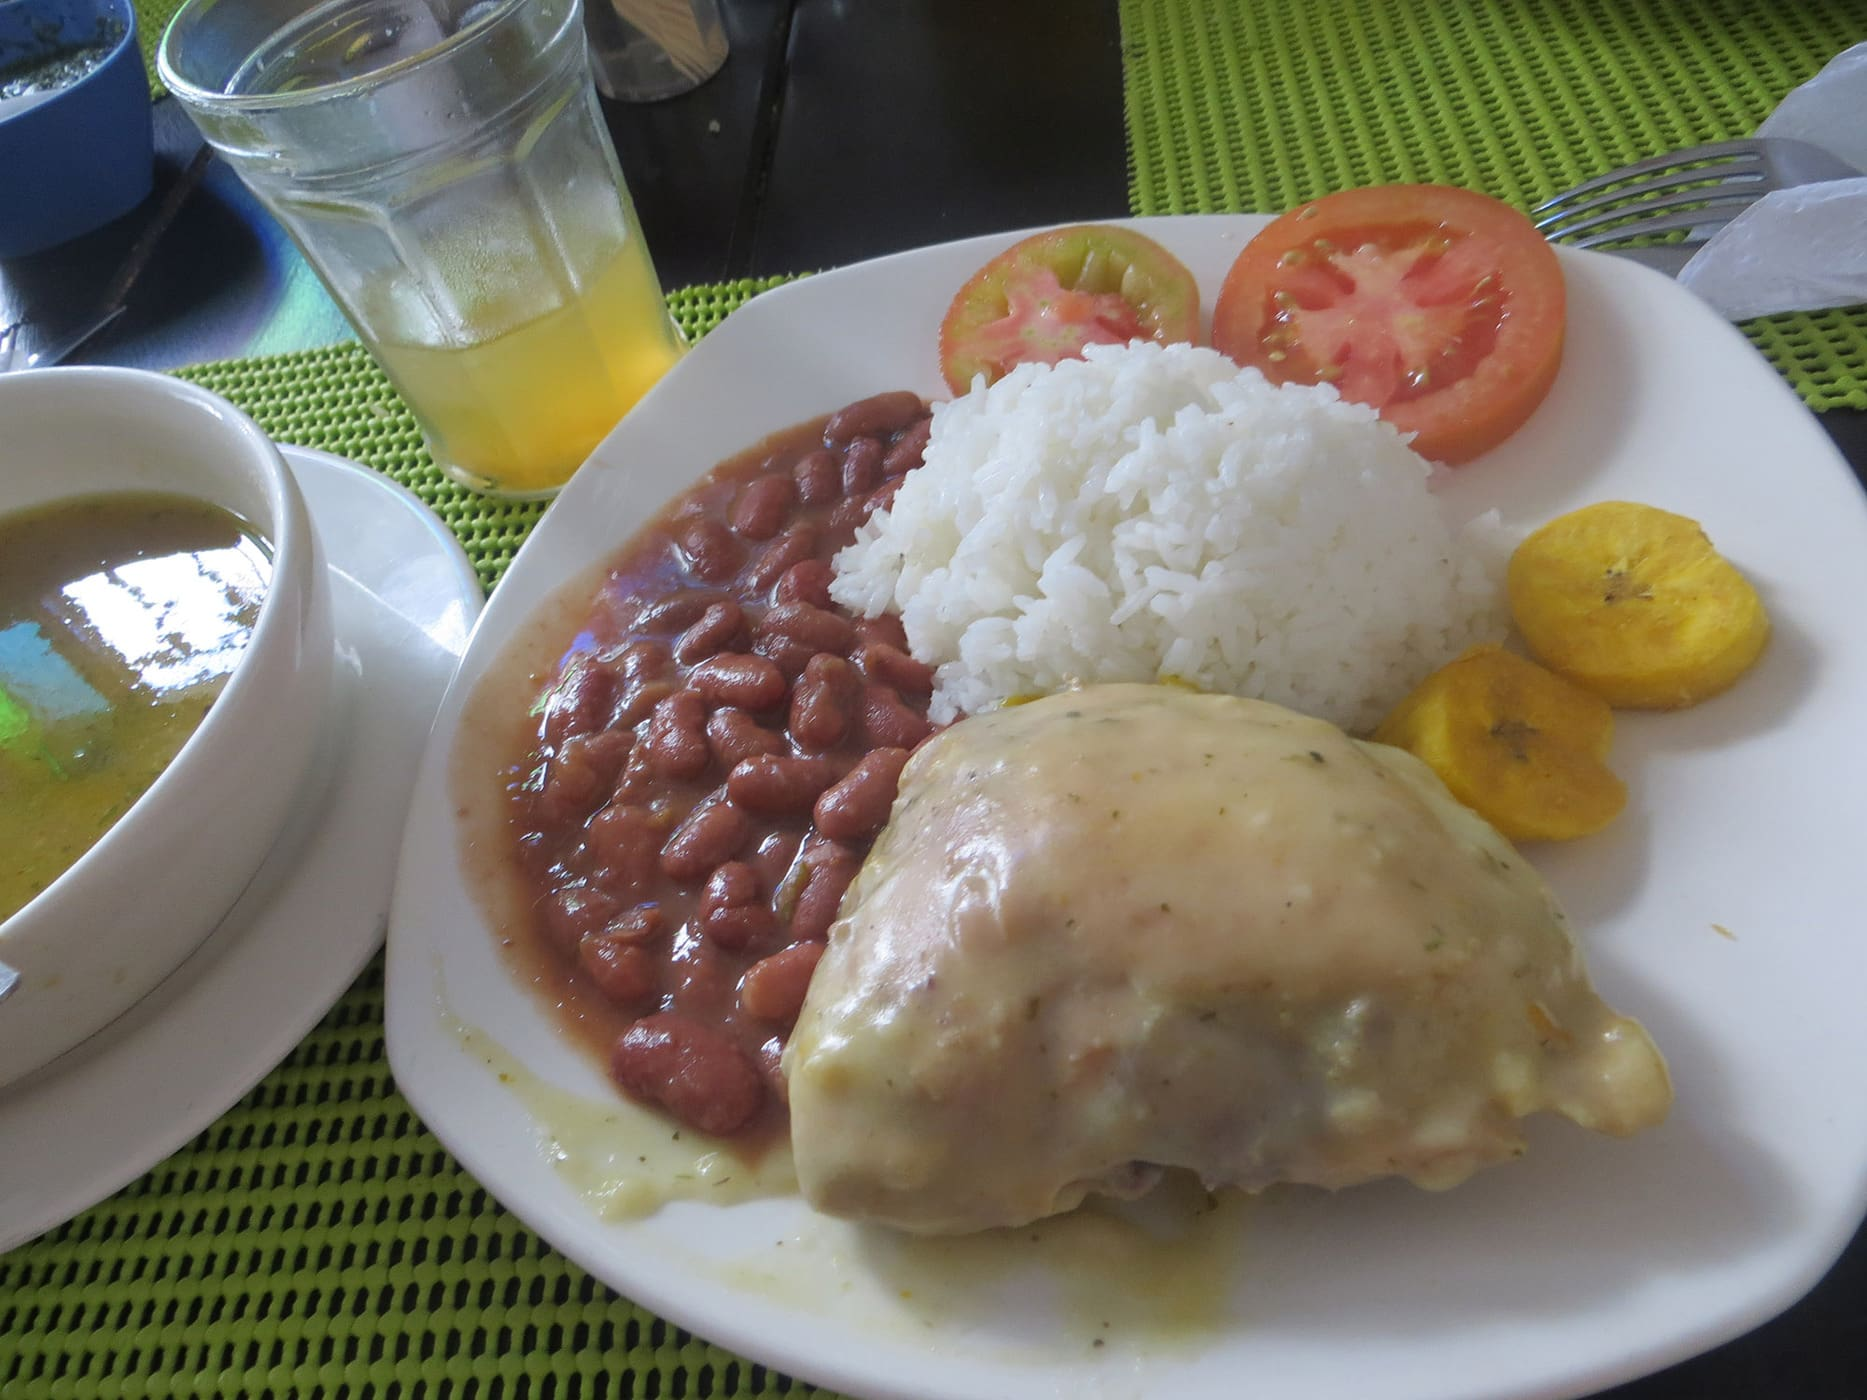 Lunch in Cali, Colombia